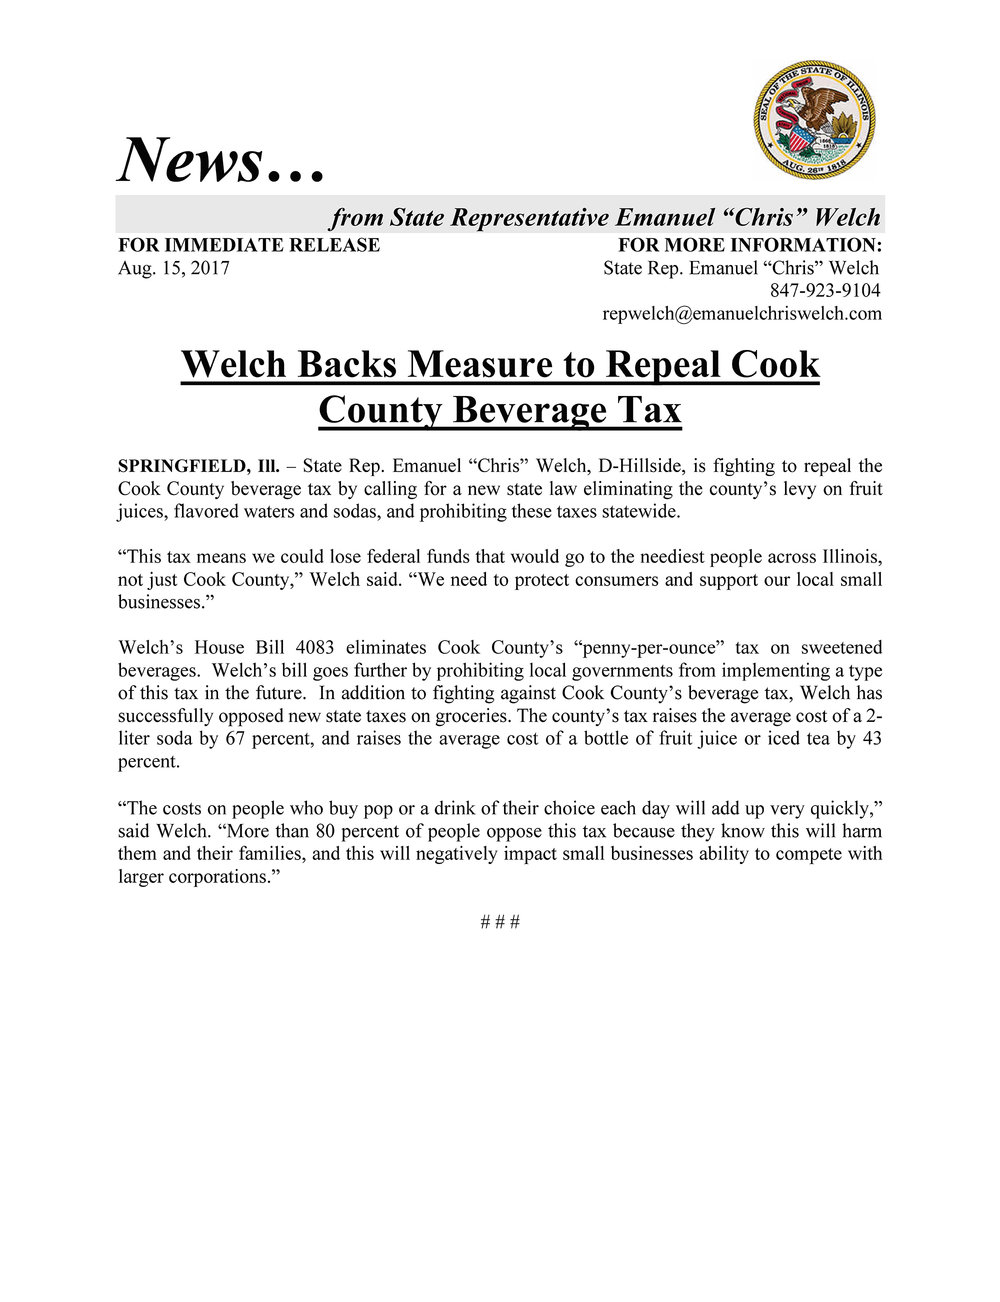 Welch Bill Demands Fiscal Accountability  (August 15, 2017)